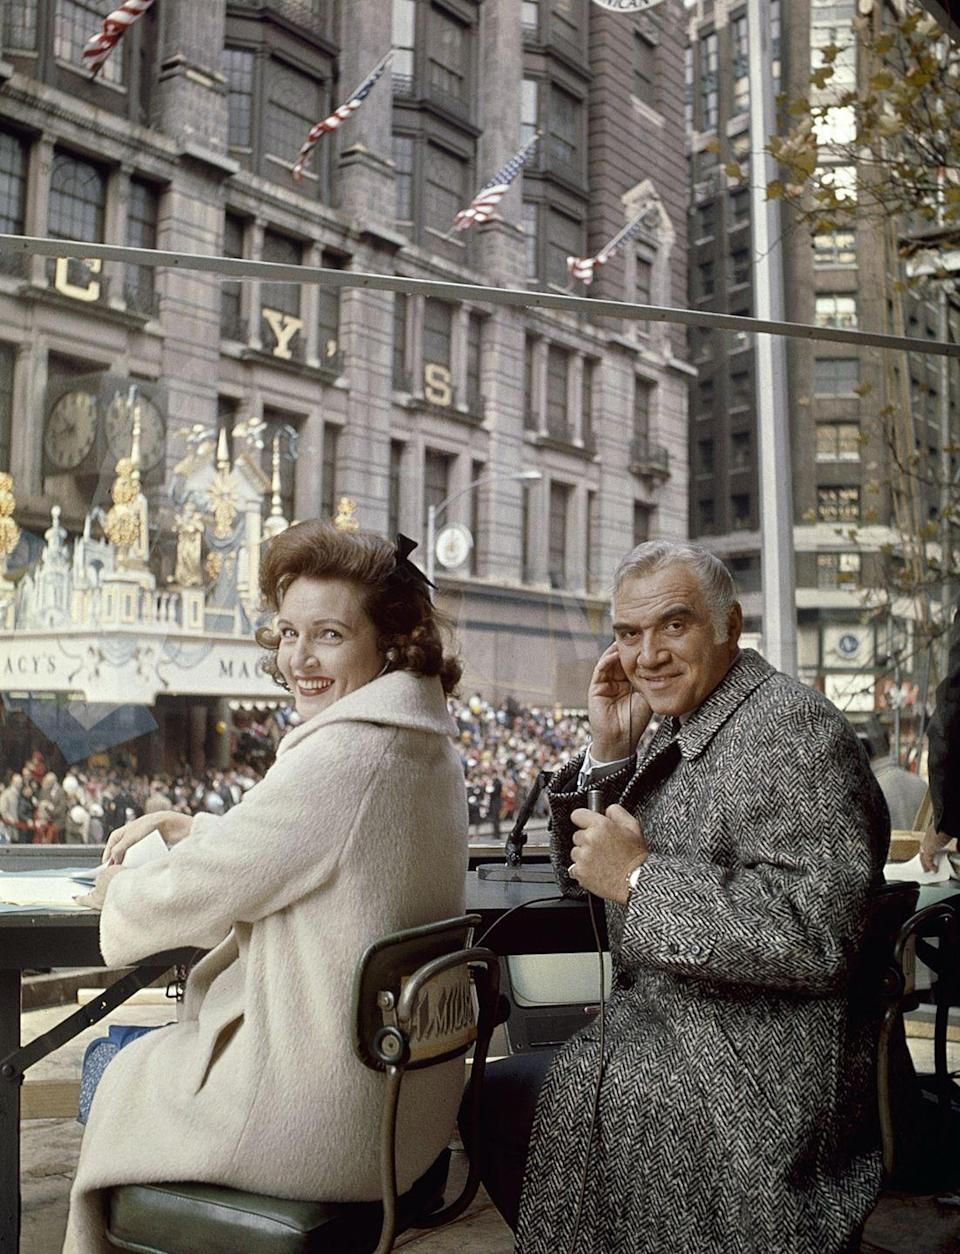 <p>It wasn't Turkey Day without Betty's commentary for the Macy's Thanksgiving Day Parade in New York City. The actress teamed up with Lorne Greene and hosted the event for a number of years. </p>